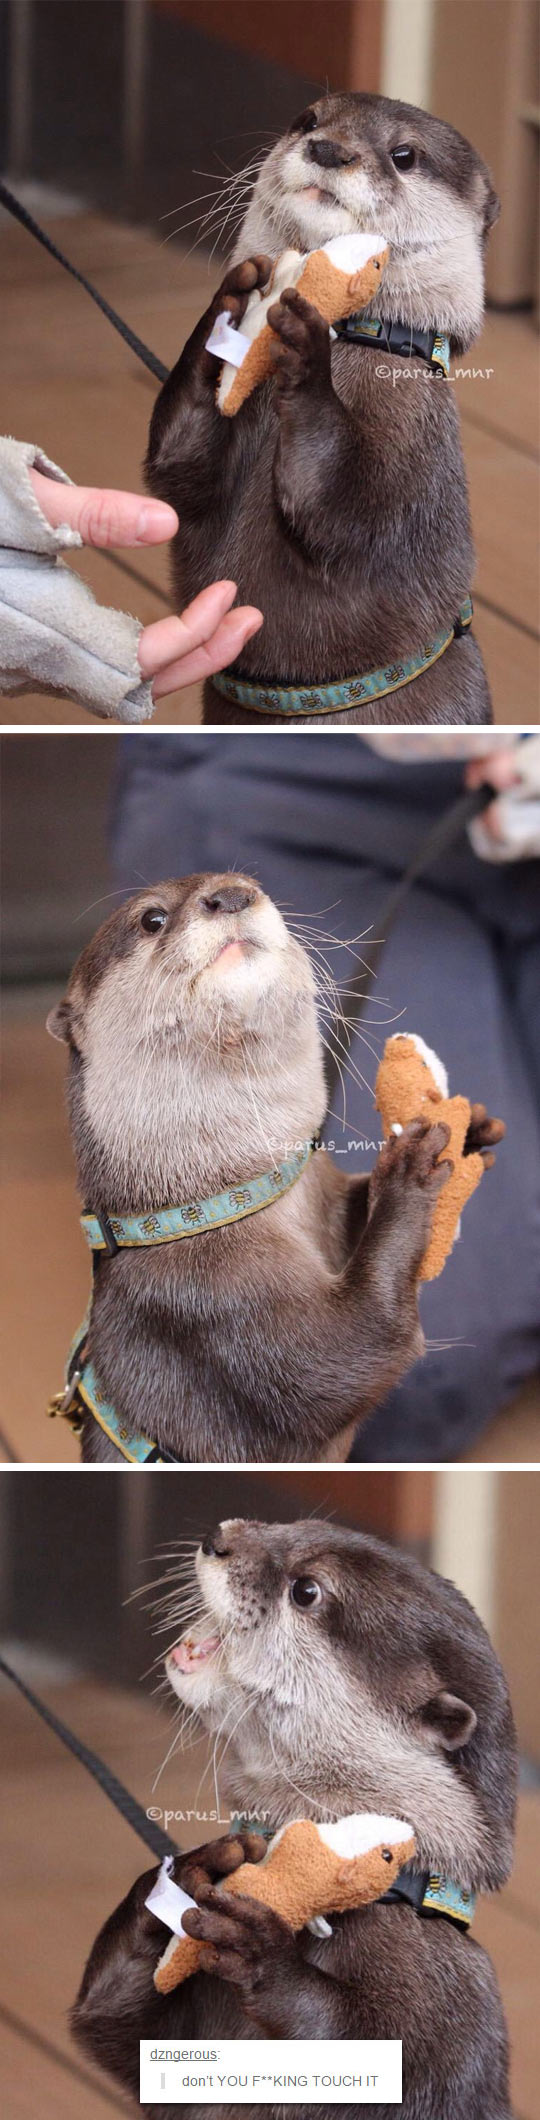 funny-otter-playing-toy-angry